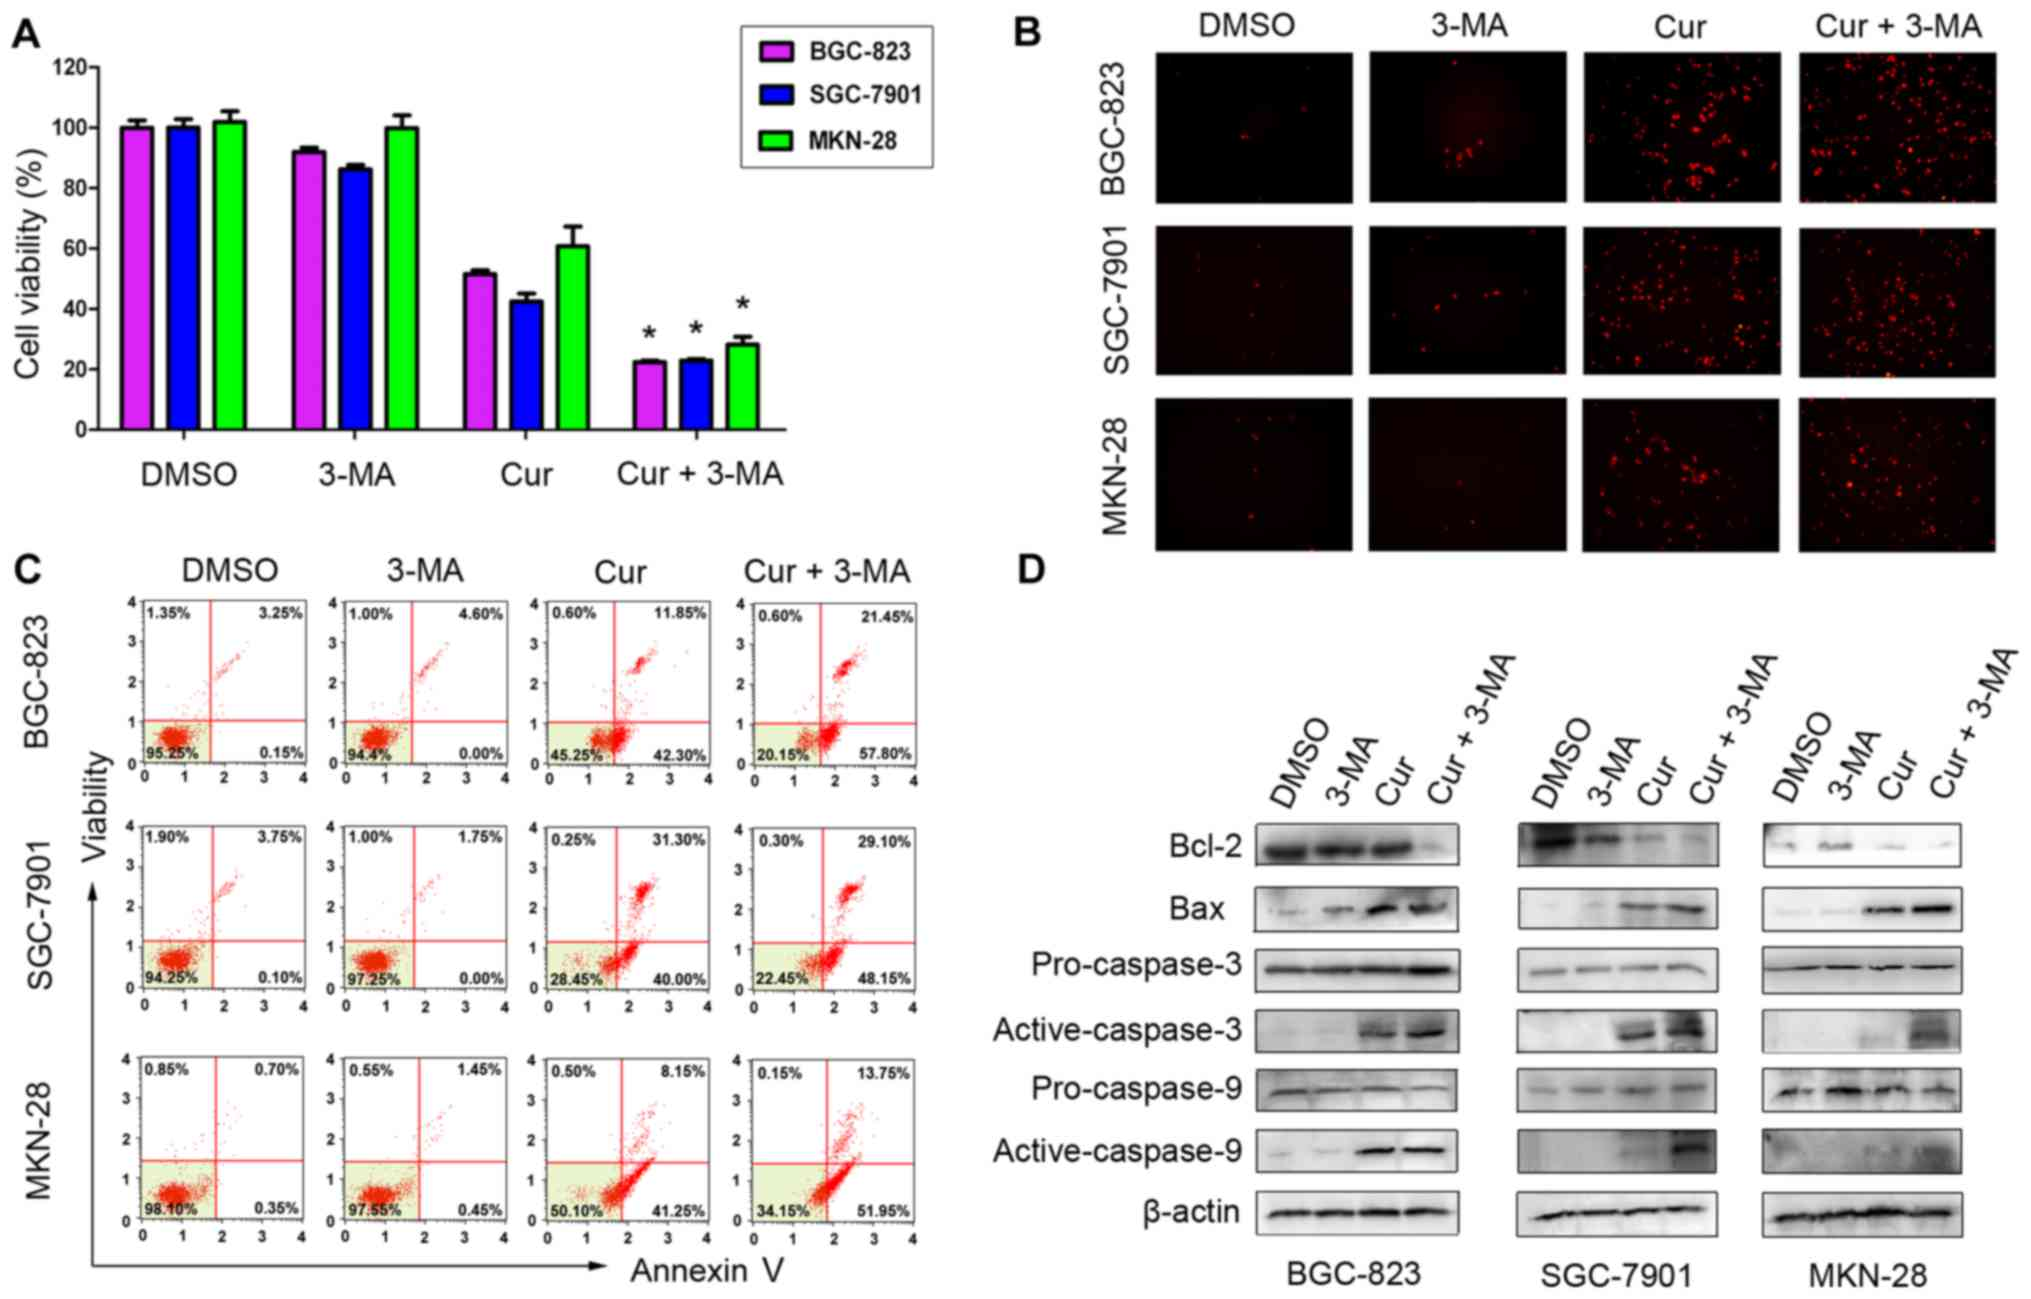 Curcumin Induces Apoptotic Cell Death And Protective Autophagy In Human Gastric Cancer Cells